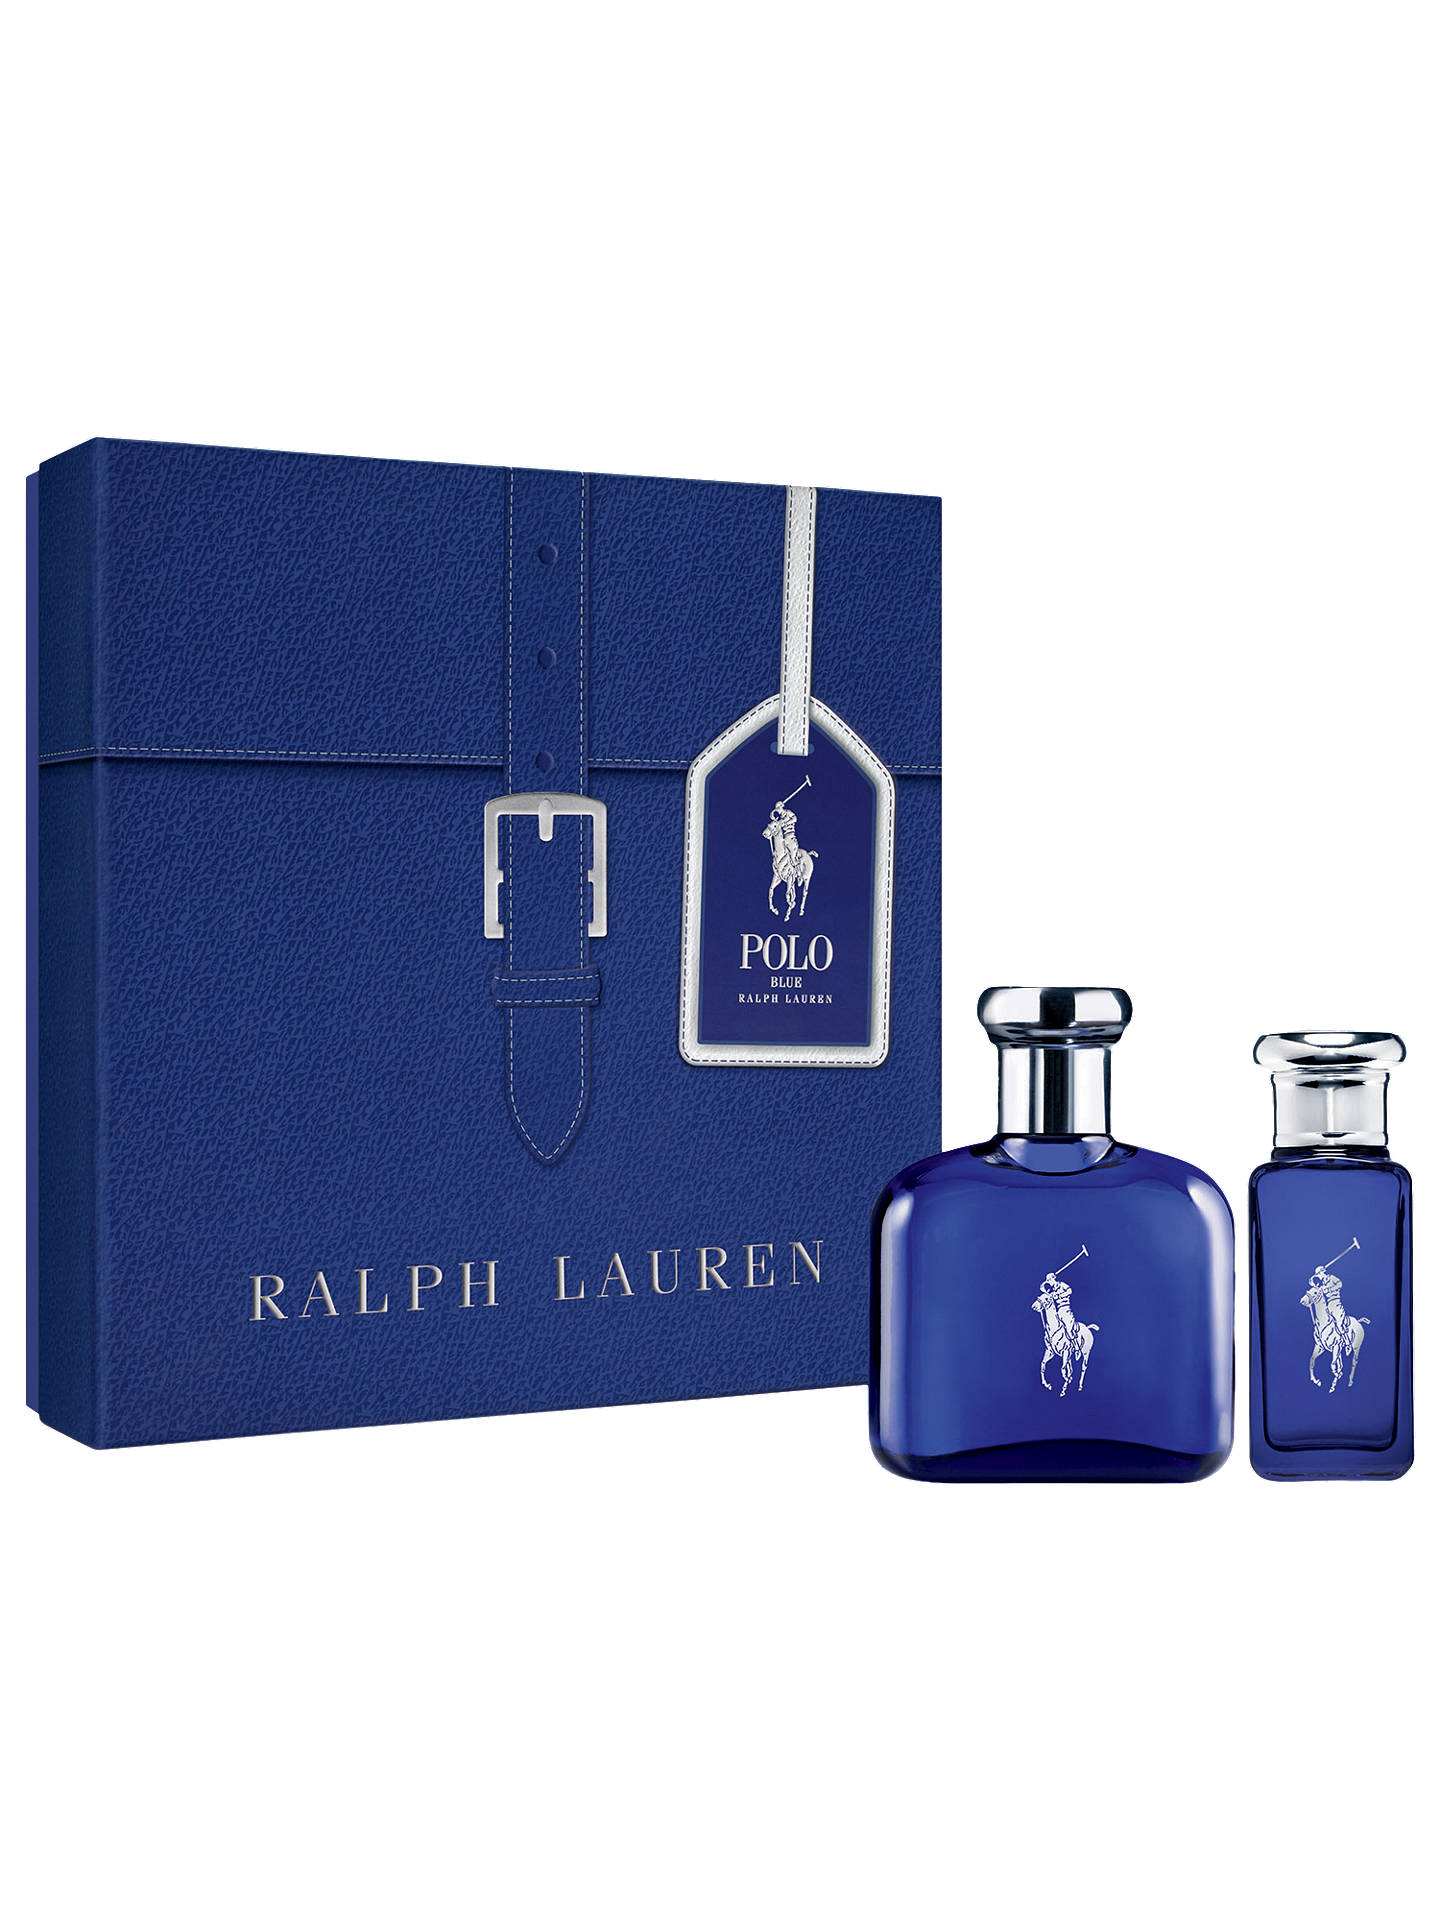 c9b167fc5a Buy Ralph Lauren Polo Blue Eau de Toilette 75ml Gift Set Online at  johnlewis.com